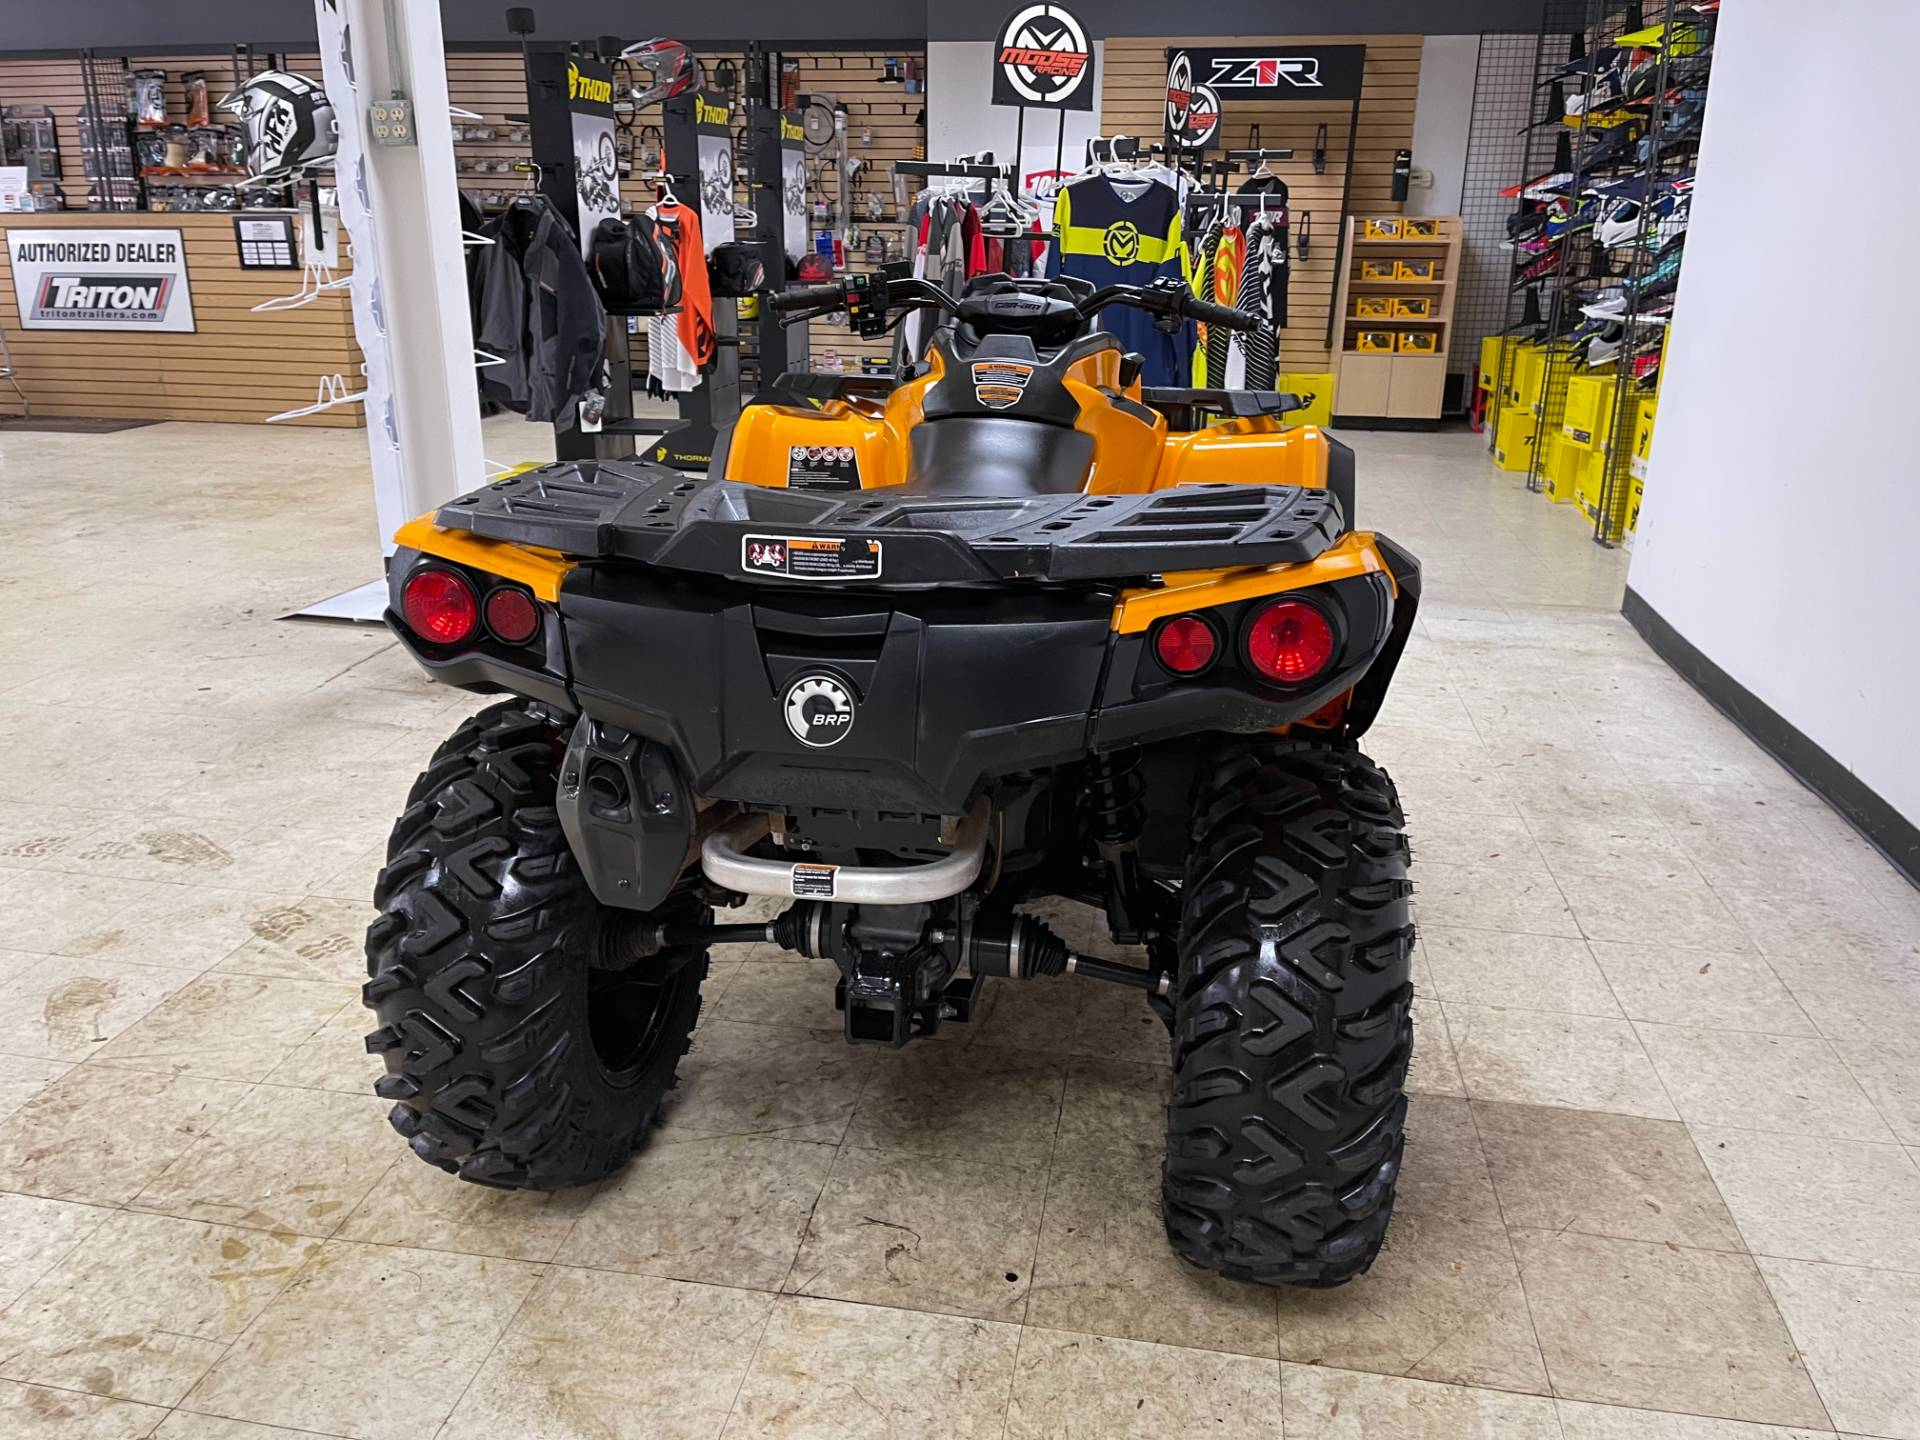 2019 Can-Am Outlander DPS 850 in Herkimer, New York - Photo 13